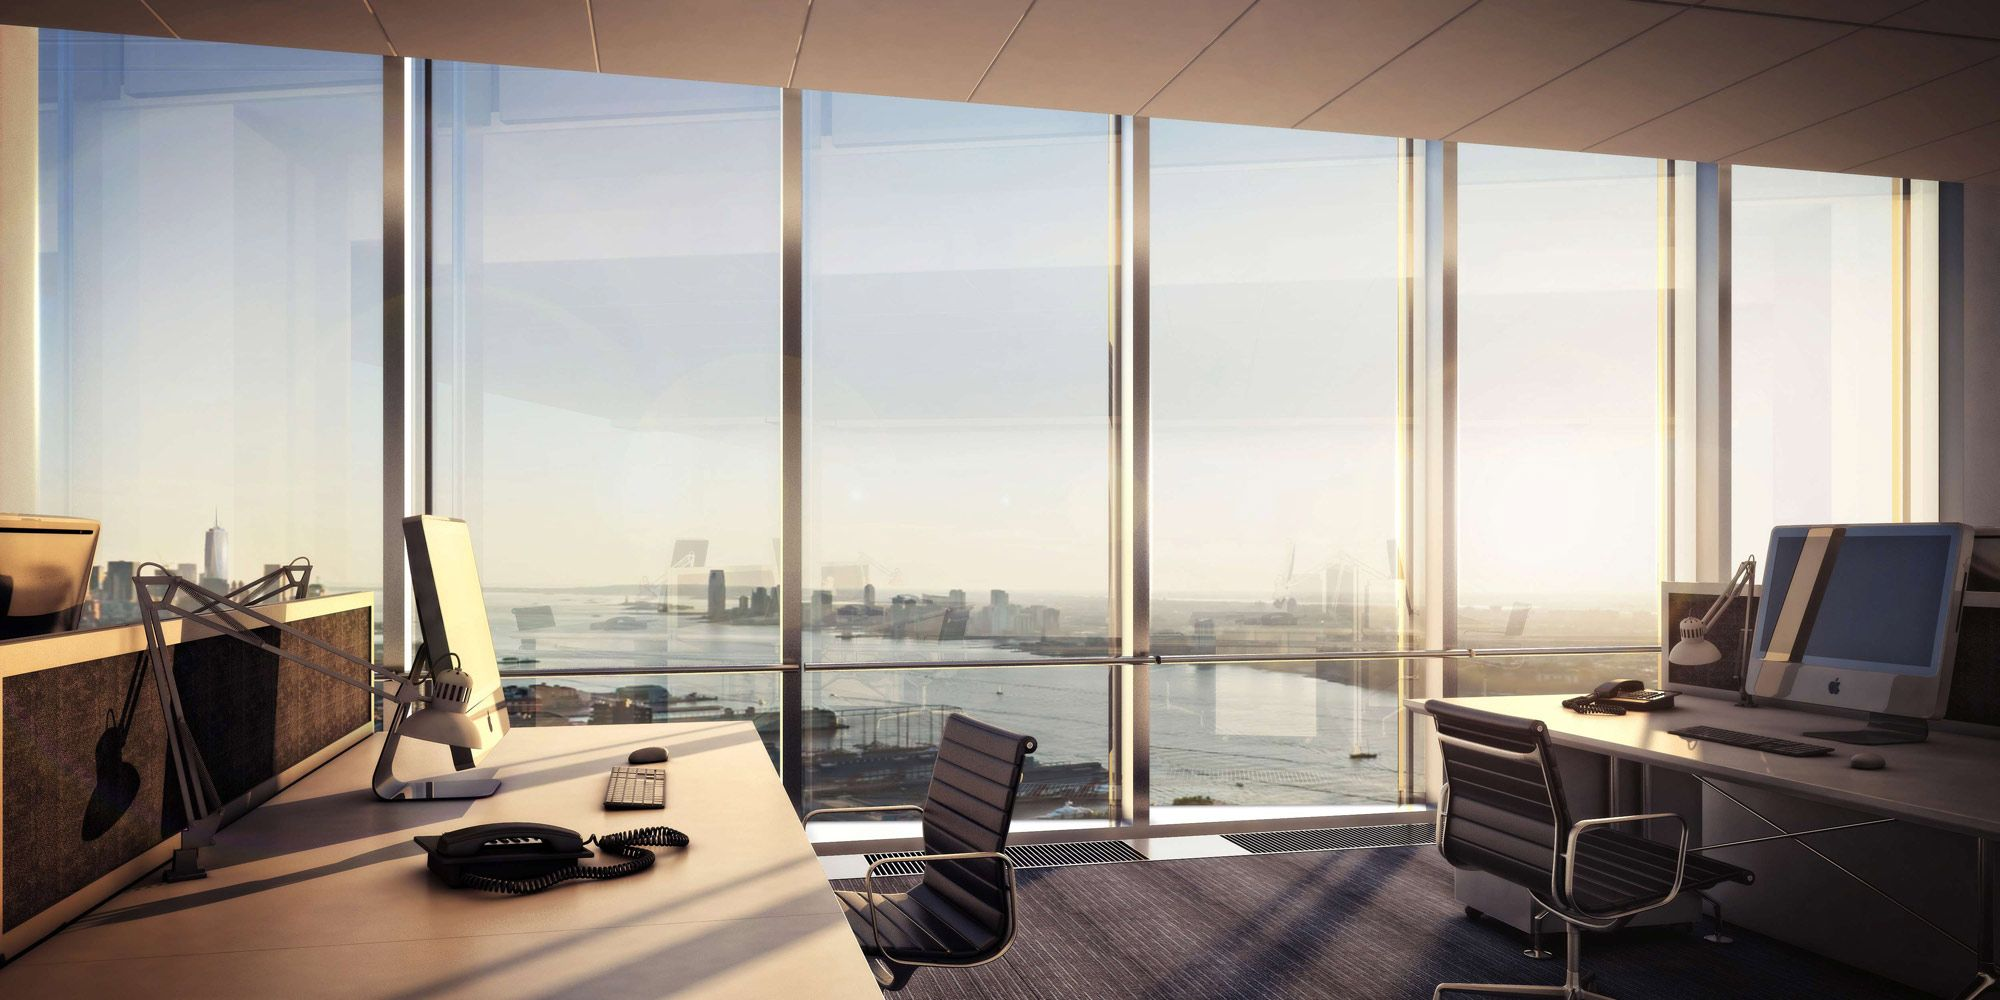 Executive Office View 10 hudson yards, open office view south, ©vh - 02/2012   renders